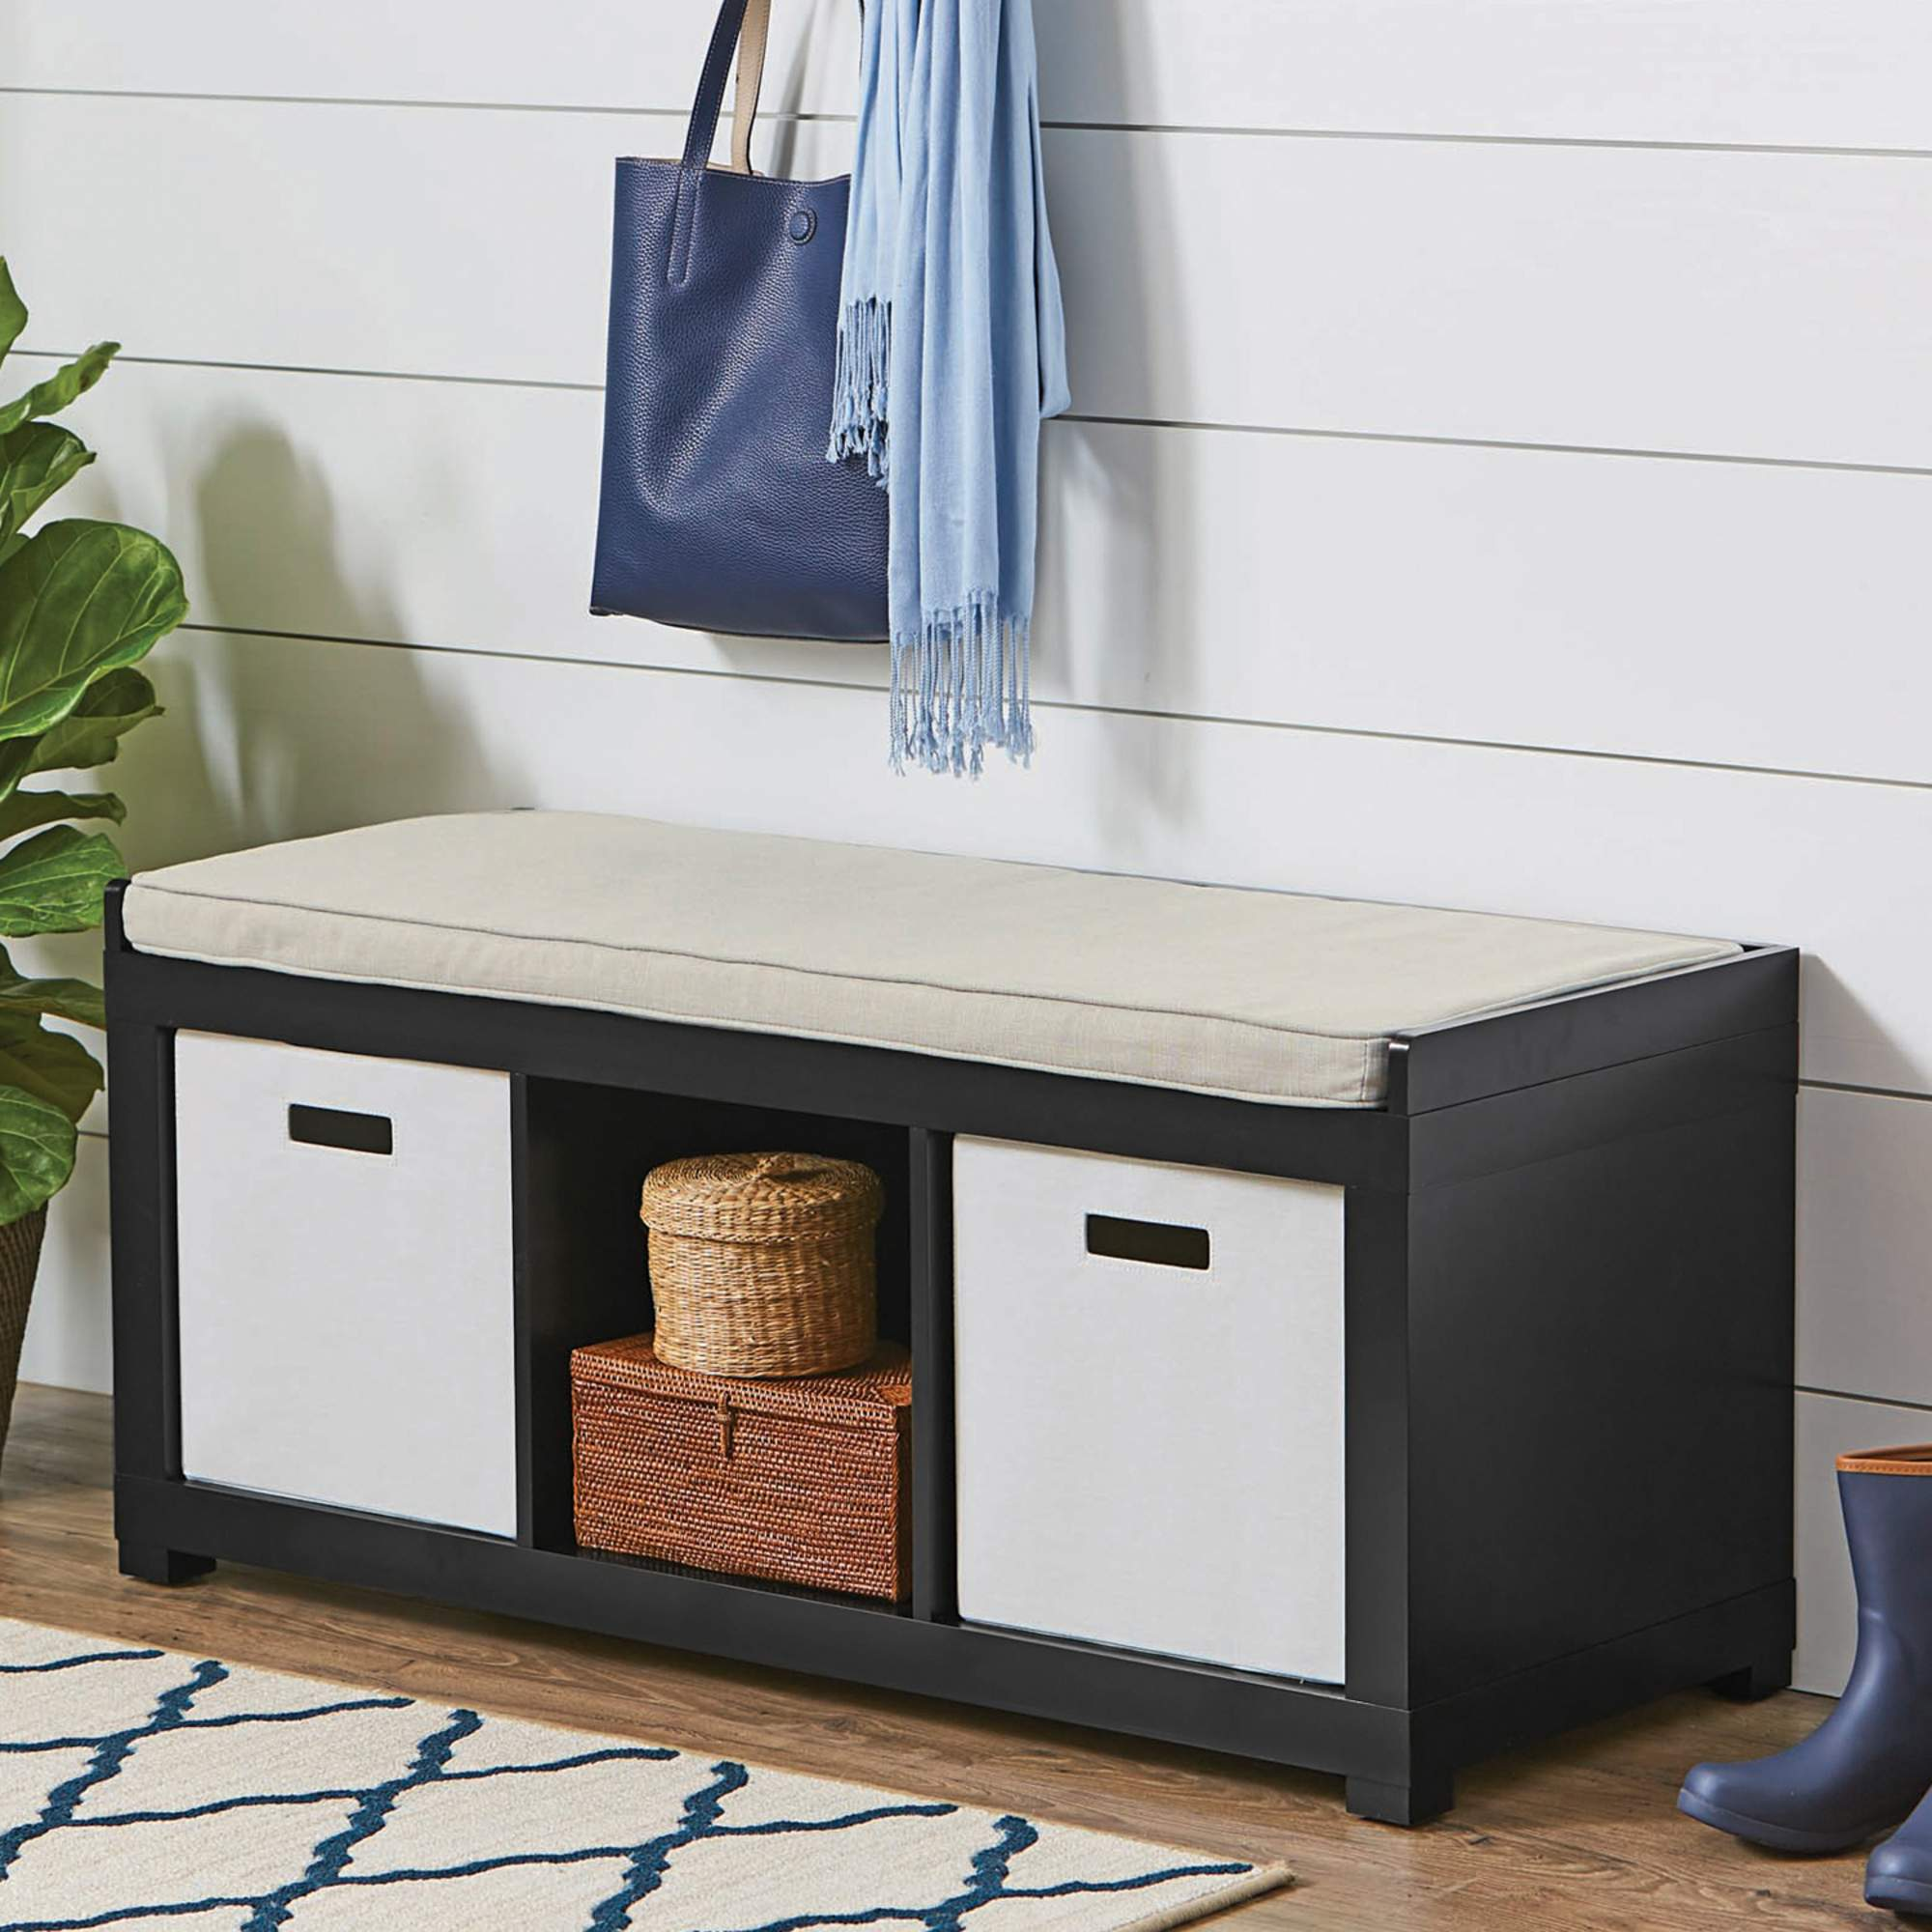 Better homes and gardens 4 cube organizer bench